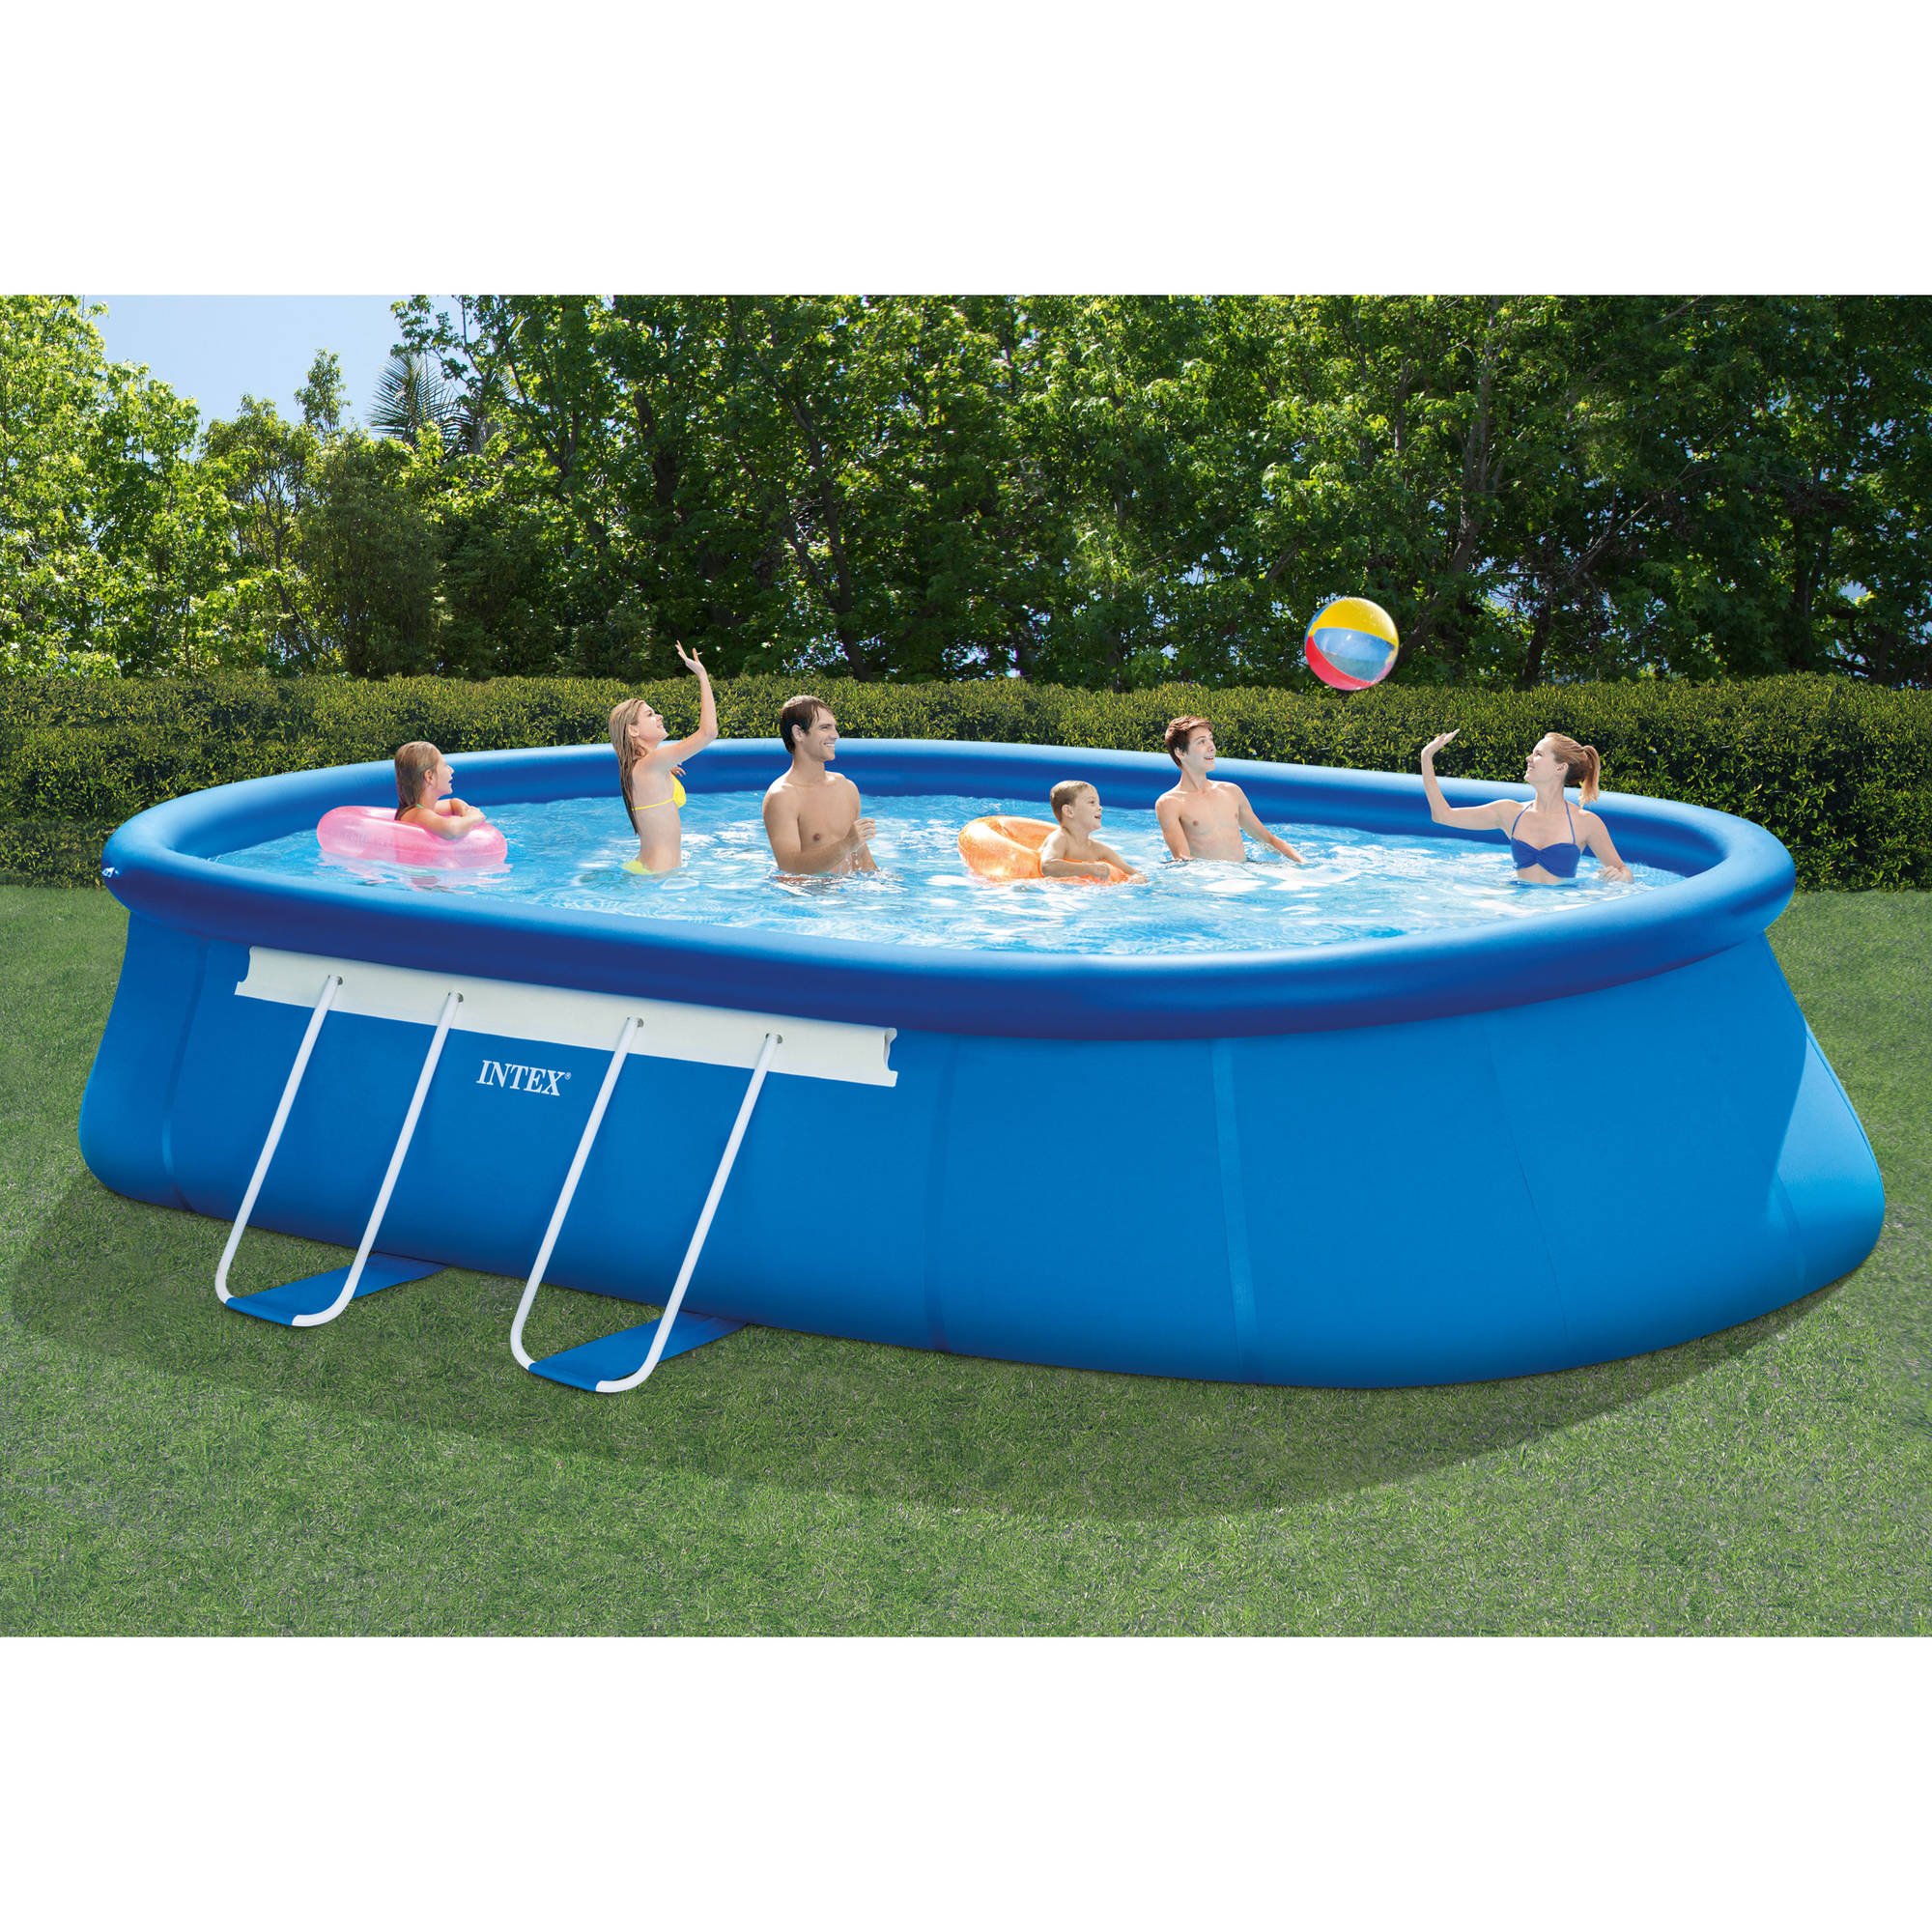 intex 20 x 12 x 48 oval frame above ground swimming pool with filter pump walmartcom - Intex Pools